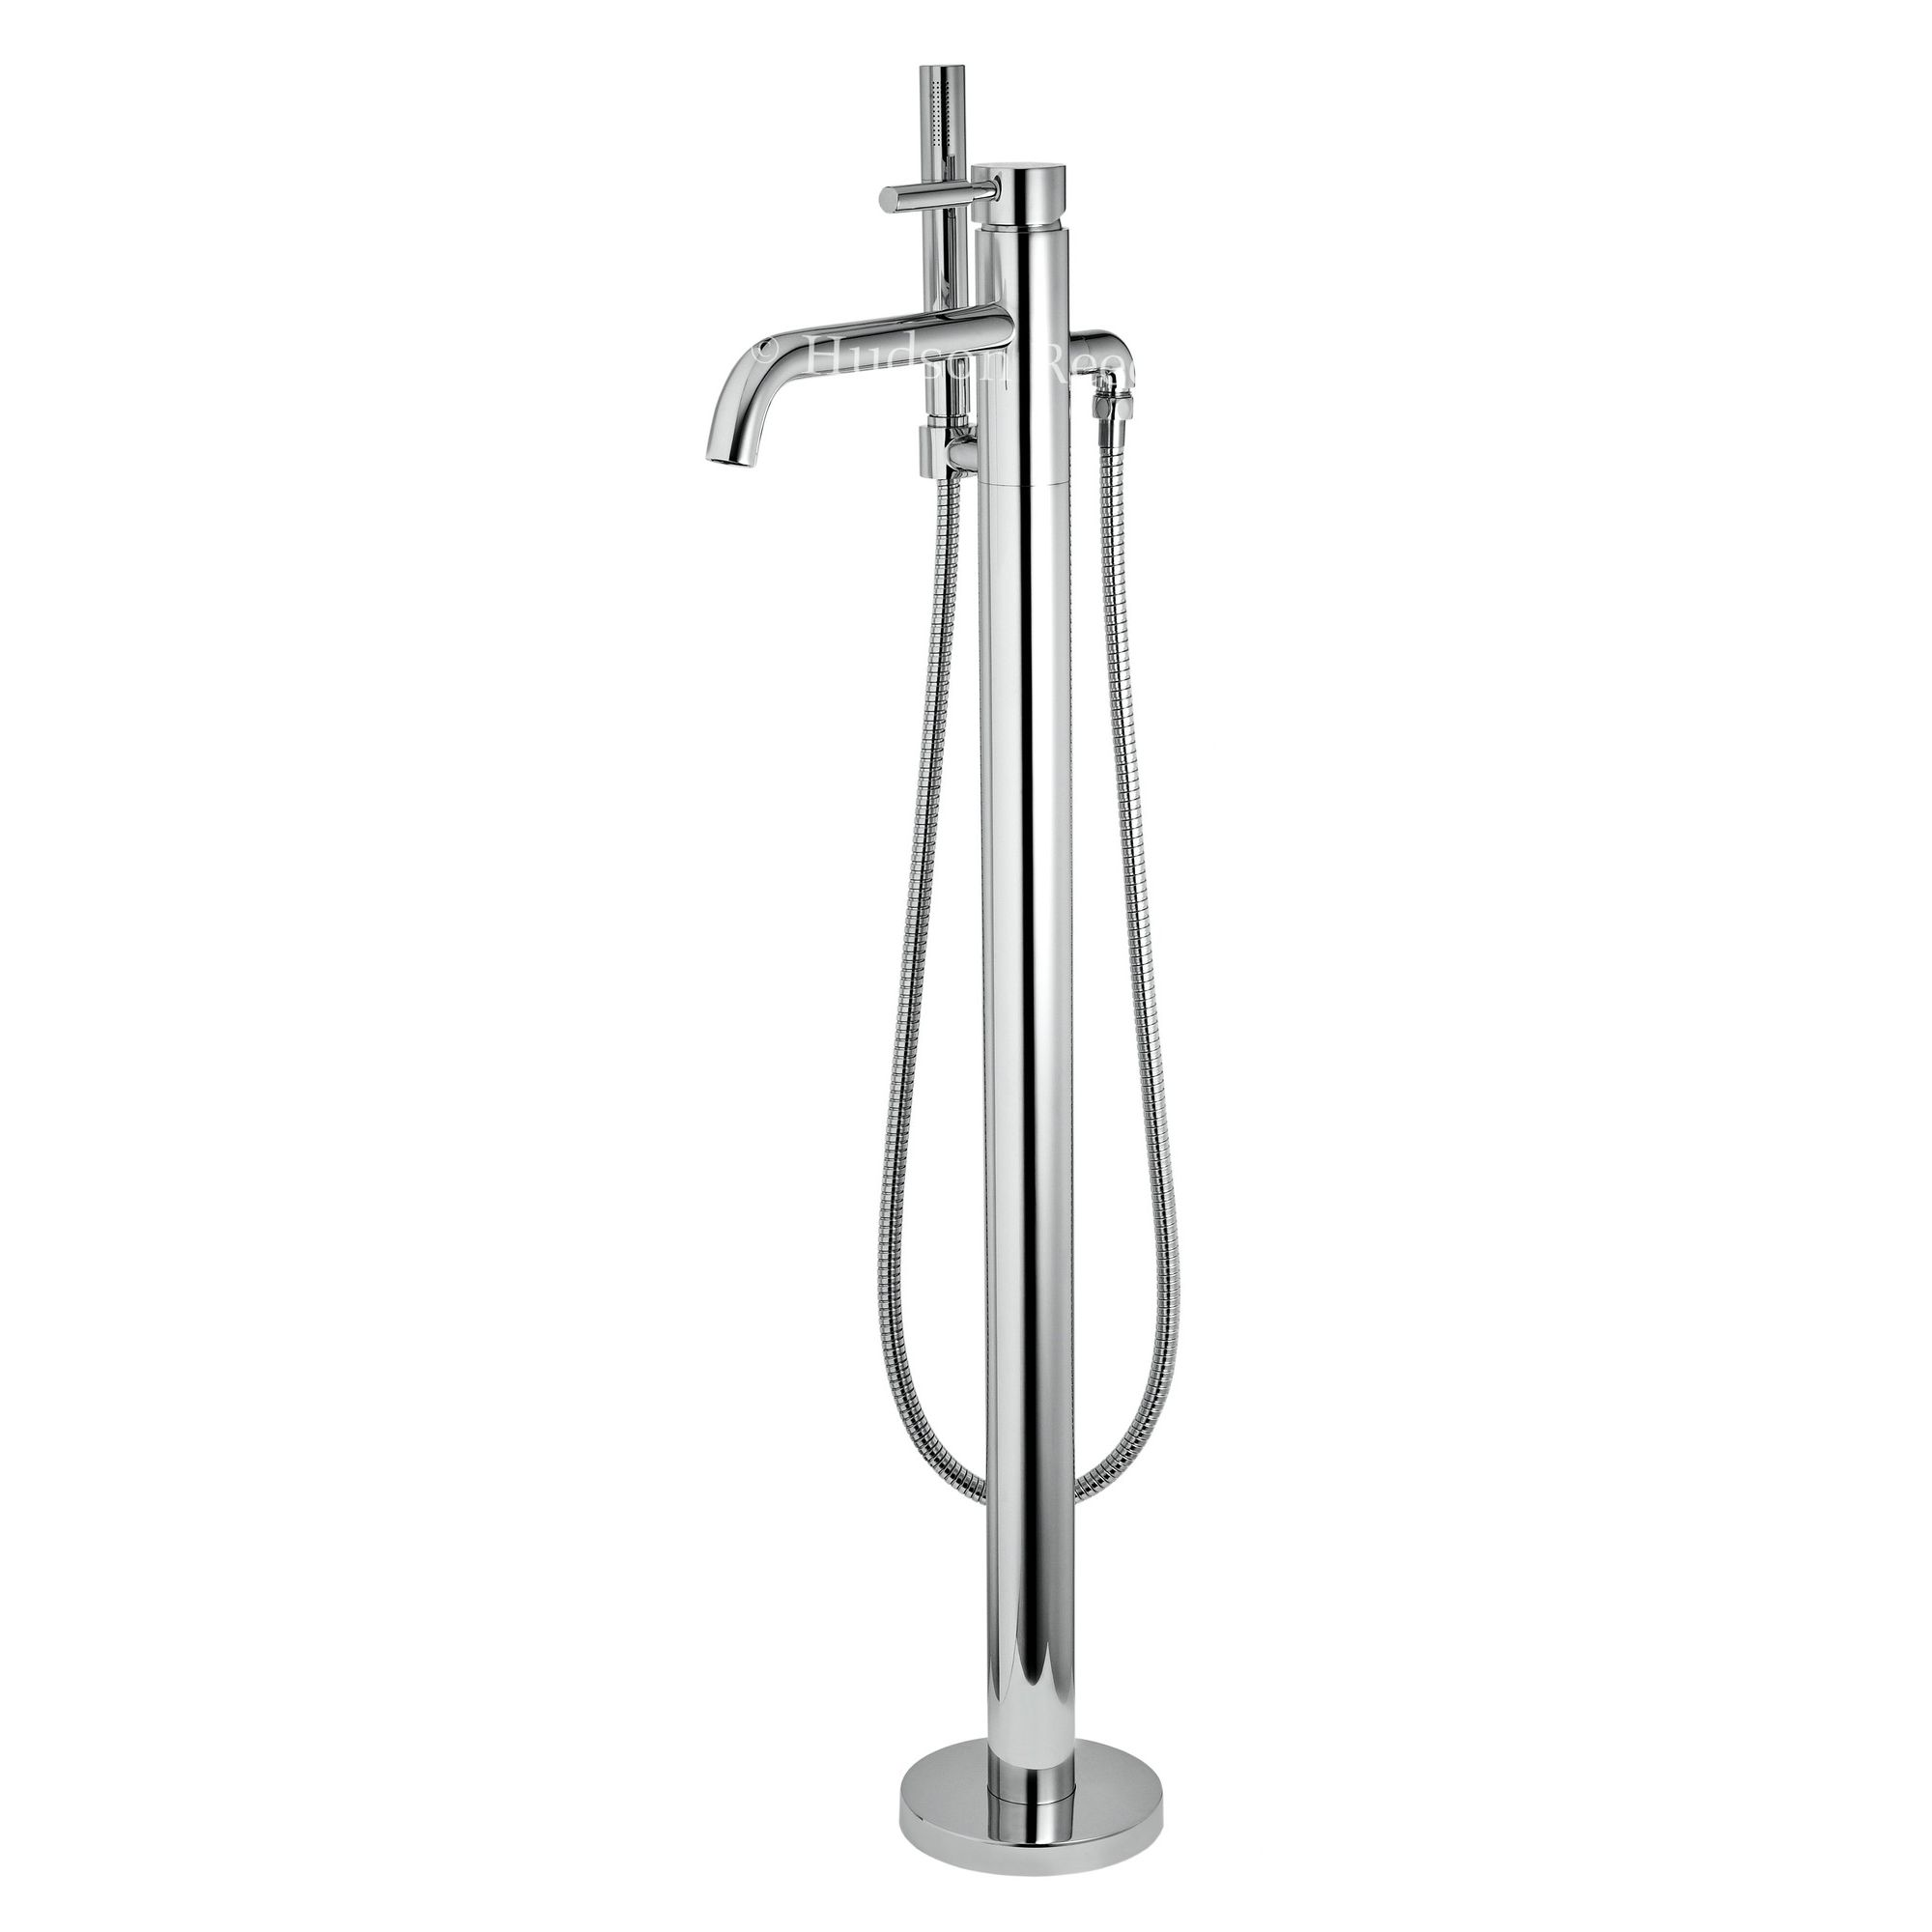 Hudson Reed Free Standing Bath Shower Mixer in Chrome at Tesco Direct